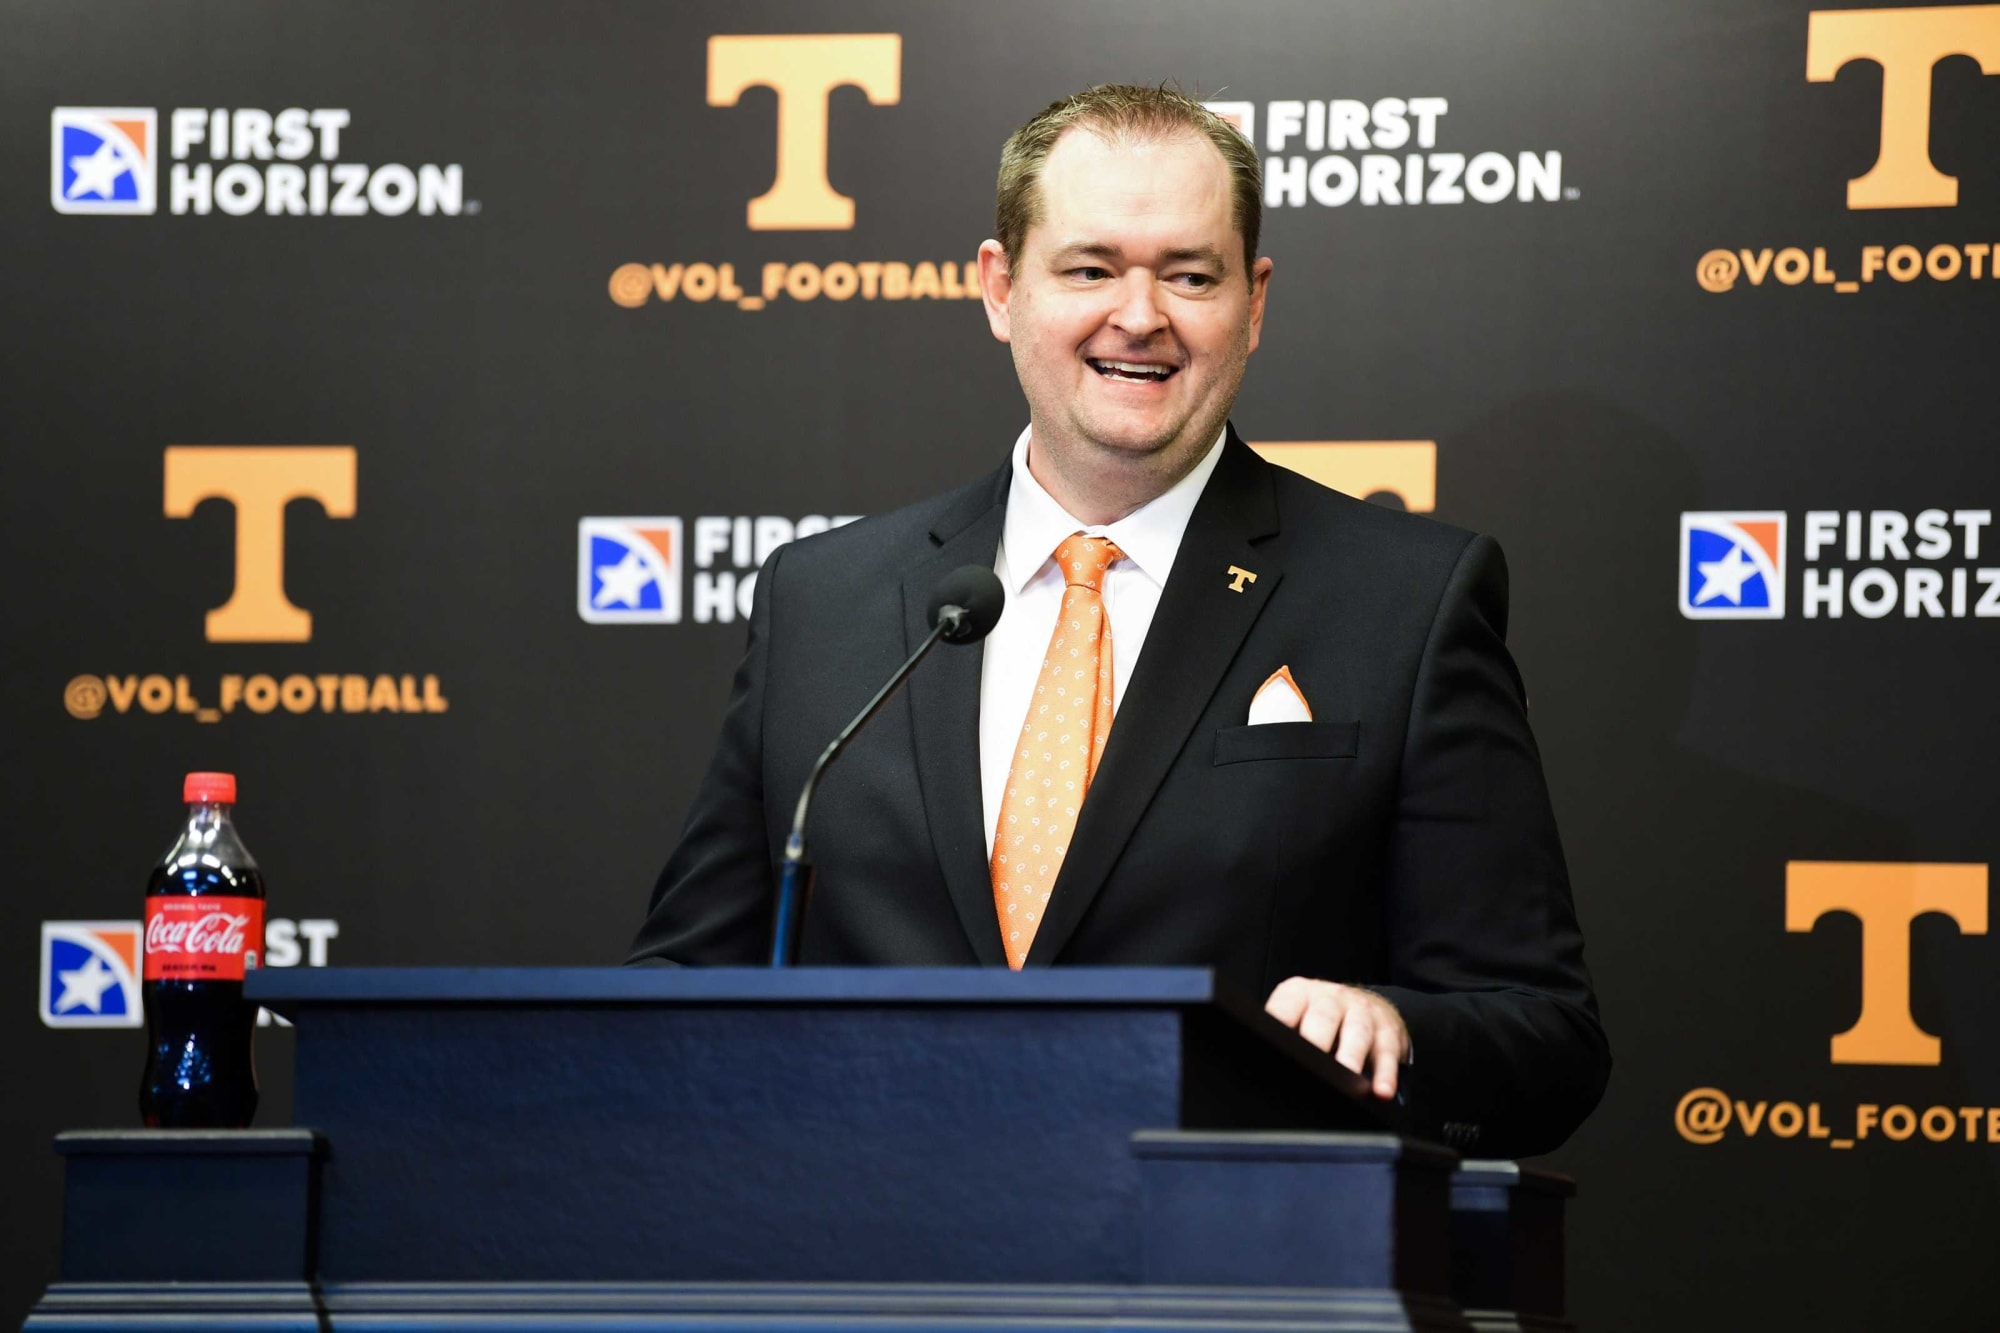 Tennessee Football: Josh Heupel's first task is finding a quarterback